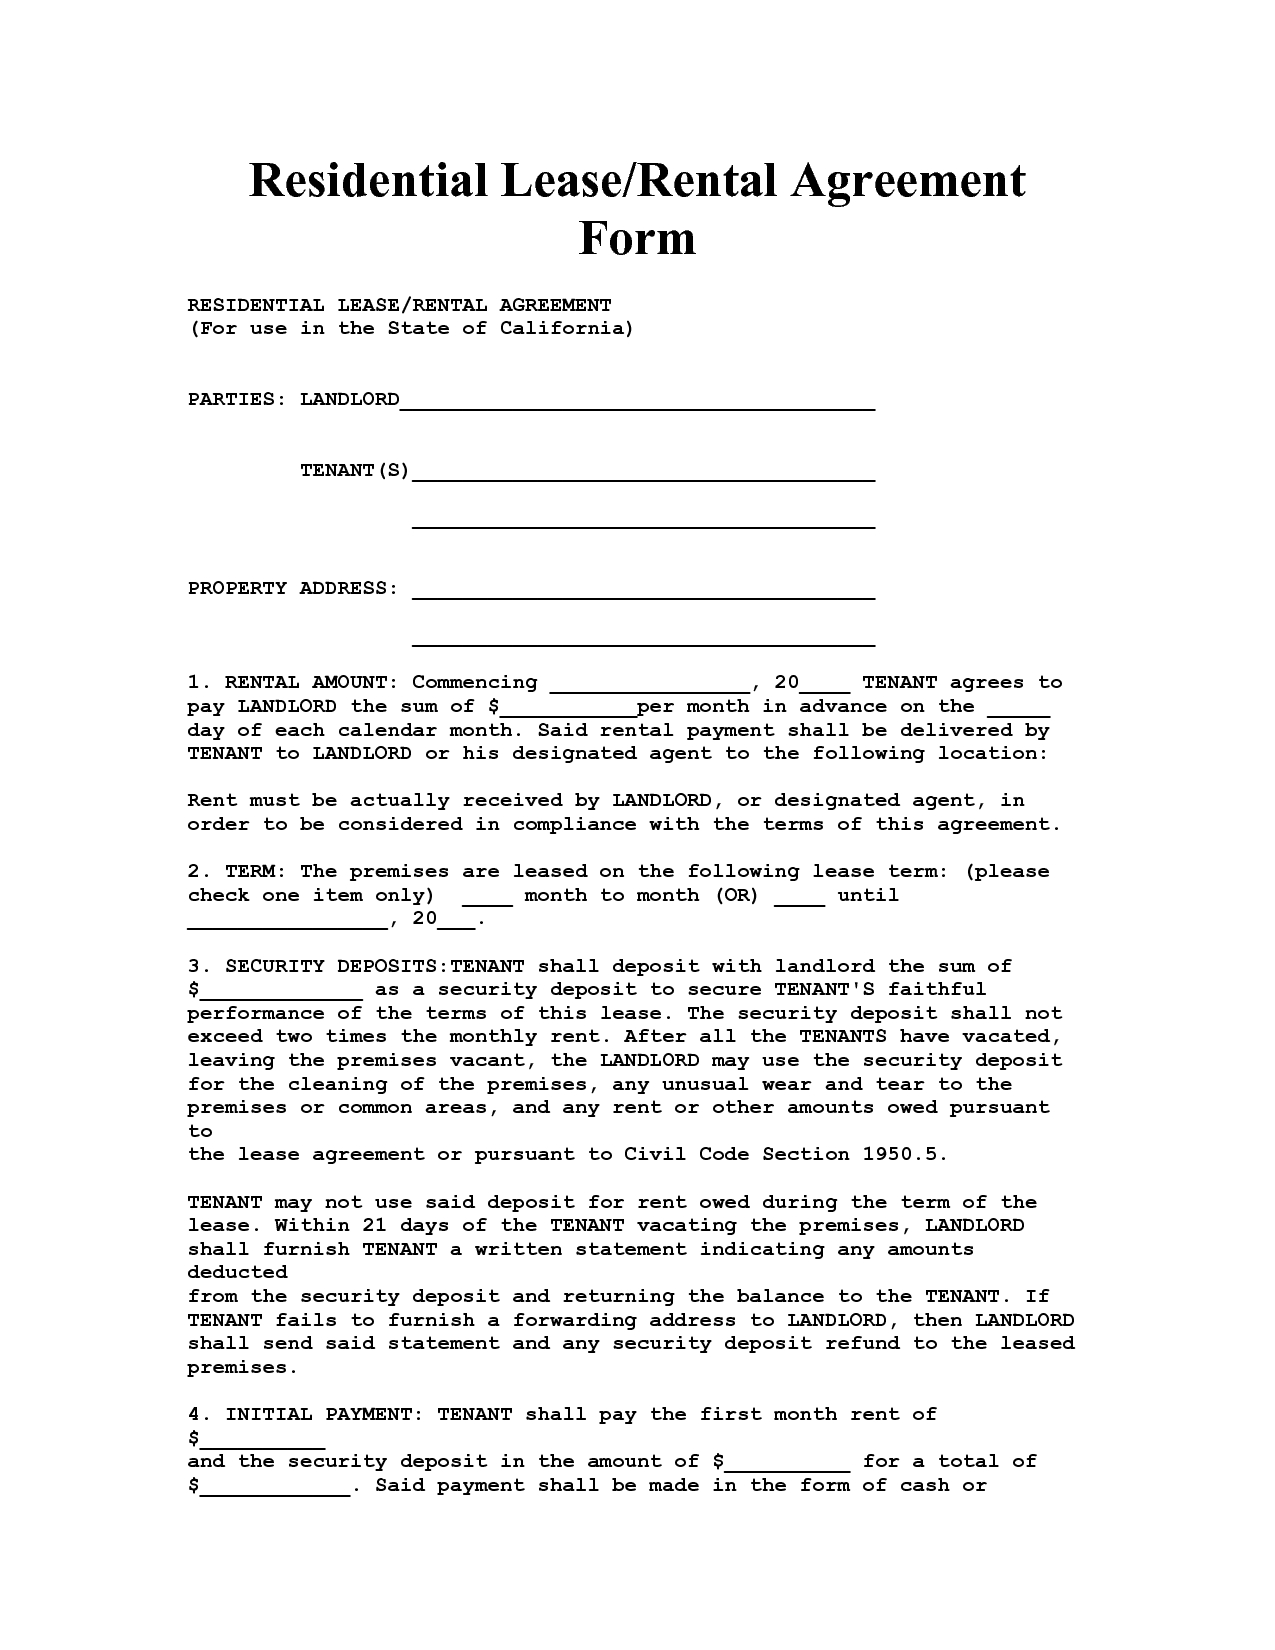 Lease Agreement Copy consignment agreement template word – Free Rent Agreement Template